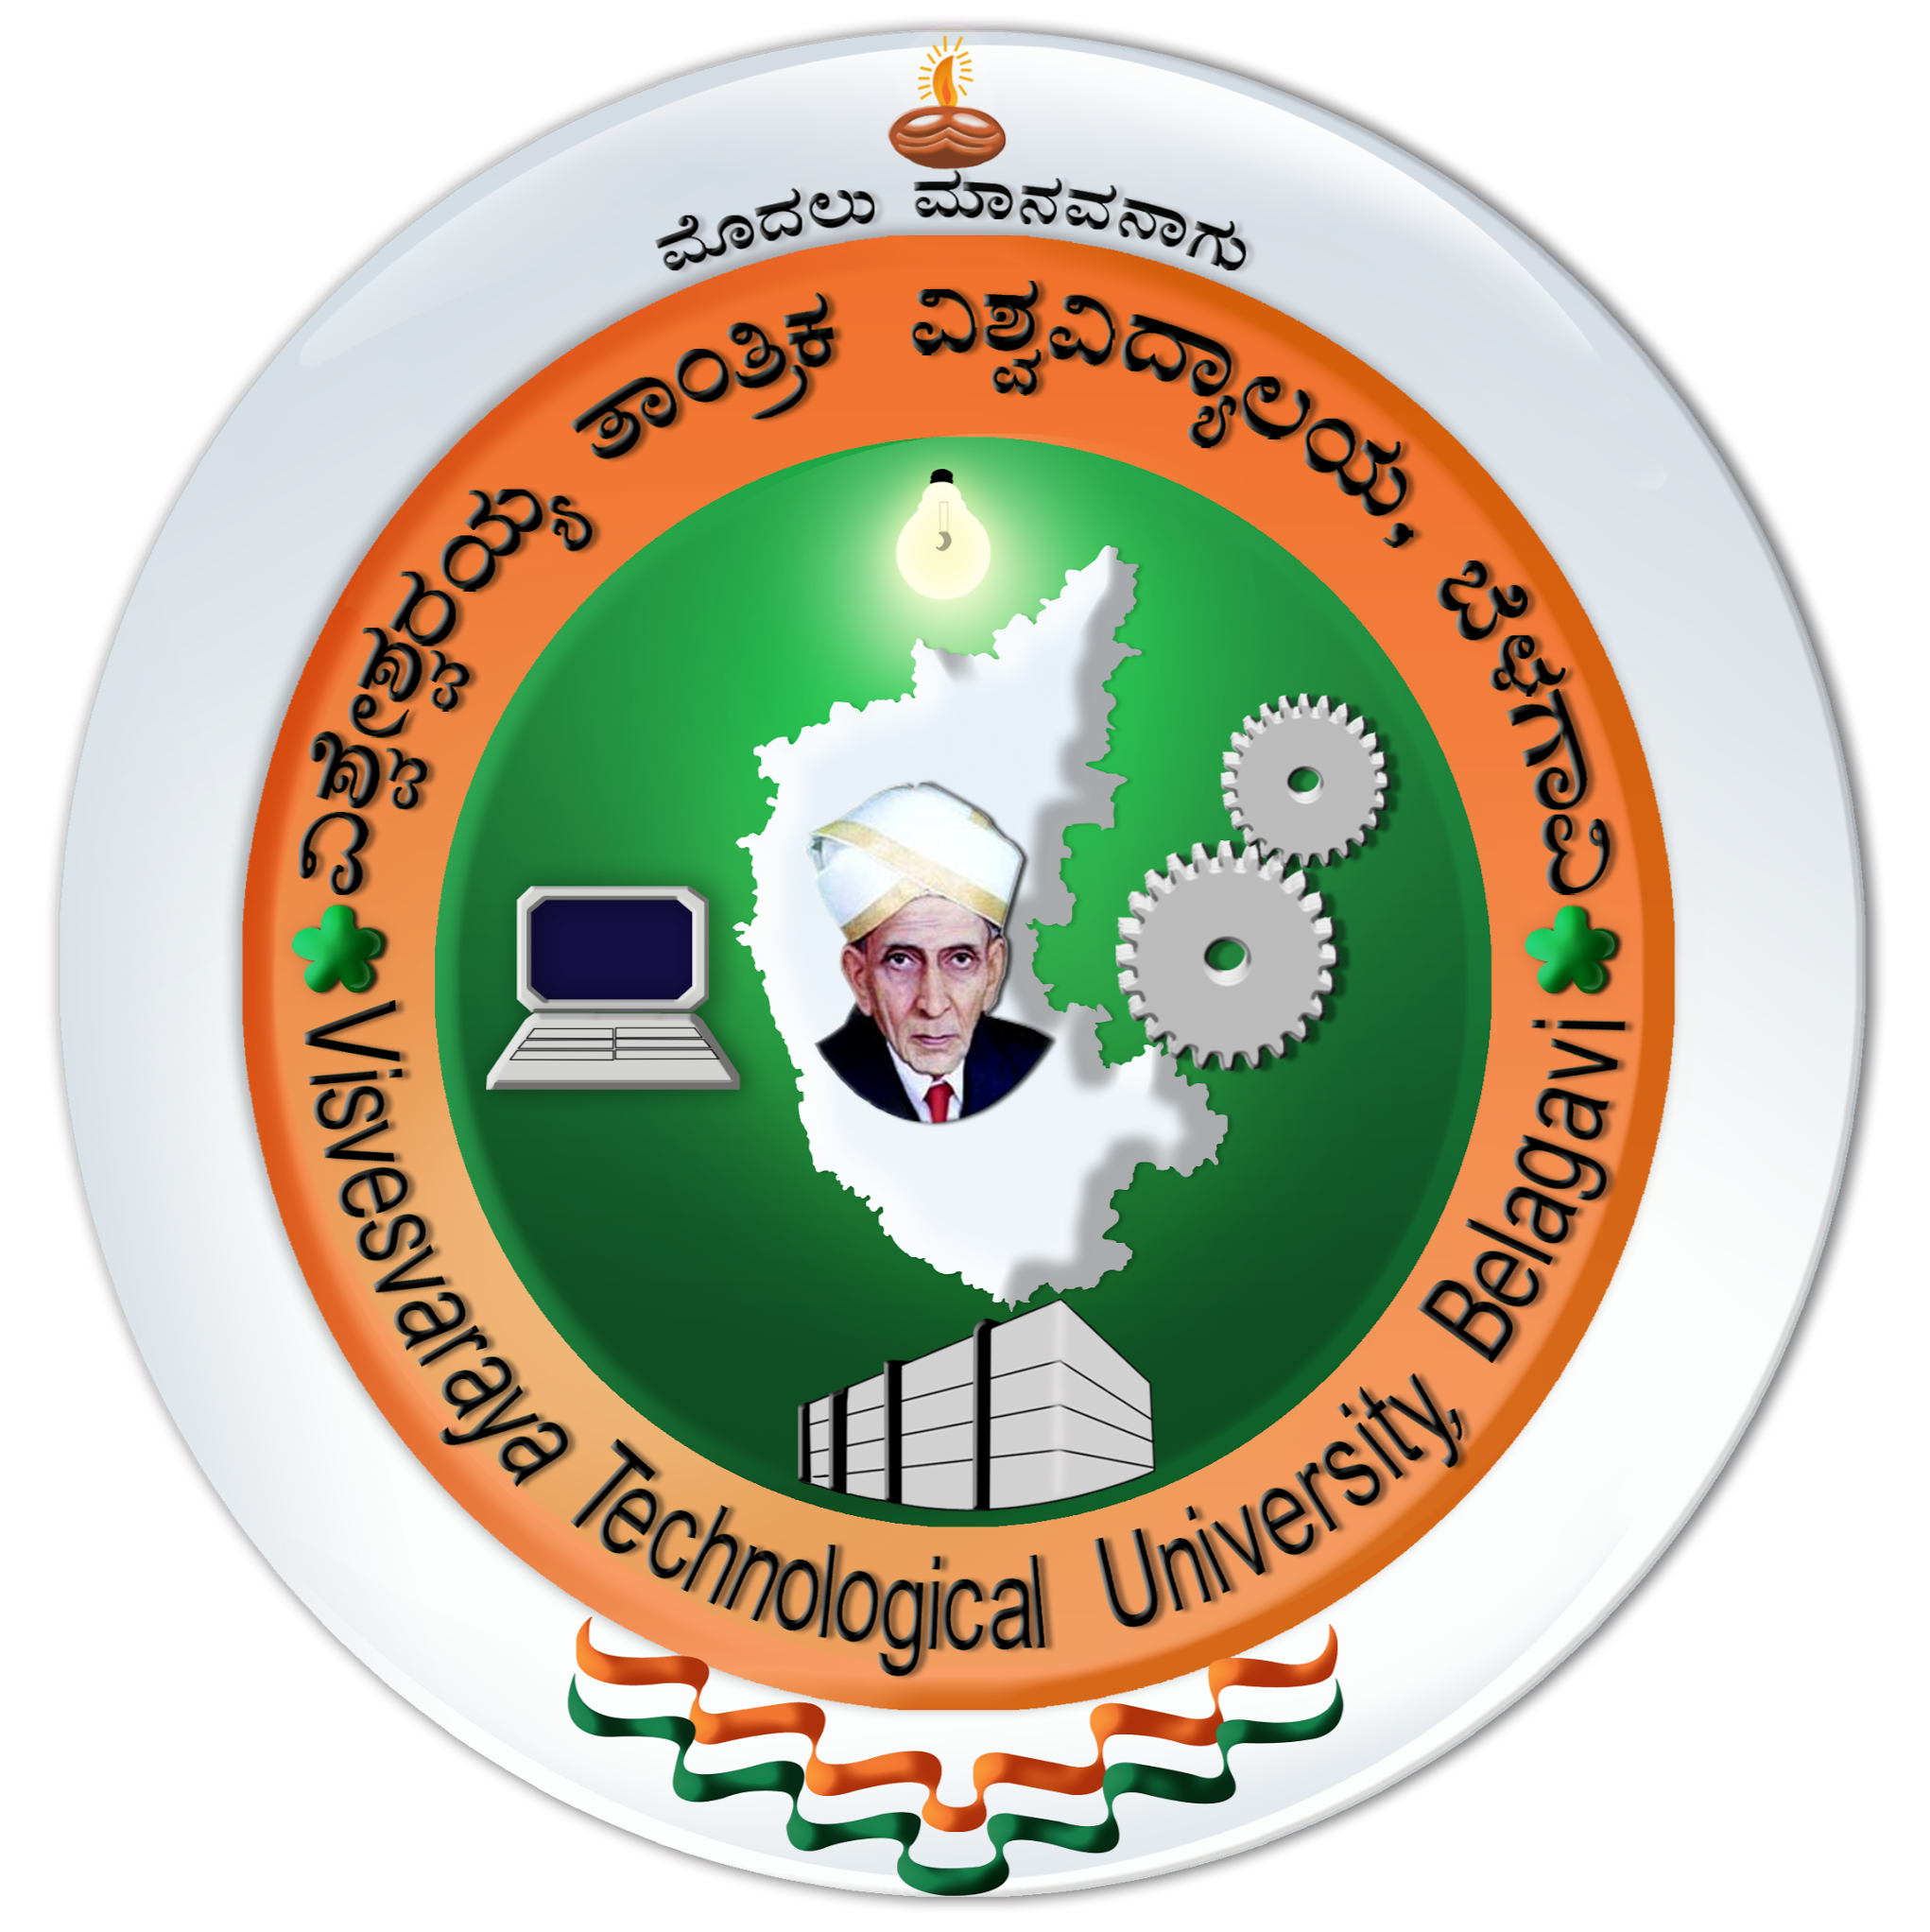 VTU Results 2019-20 Non CBCS and CBCS Ist, 3rd, 5th, 7th Result 2019-20 vtu.ac.in 1